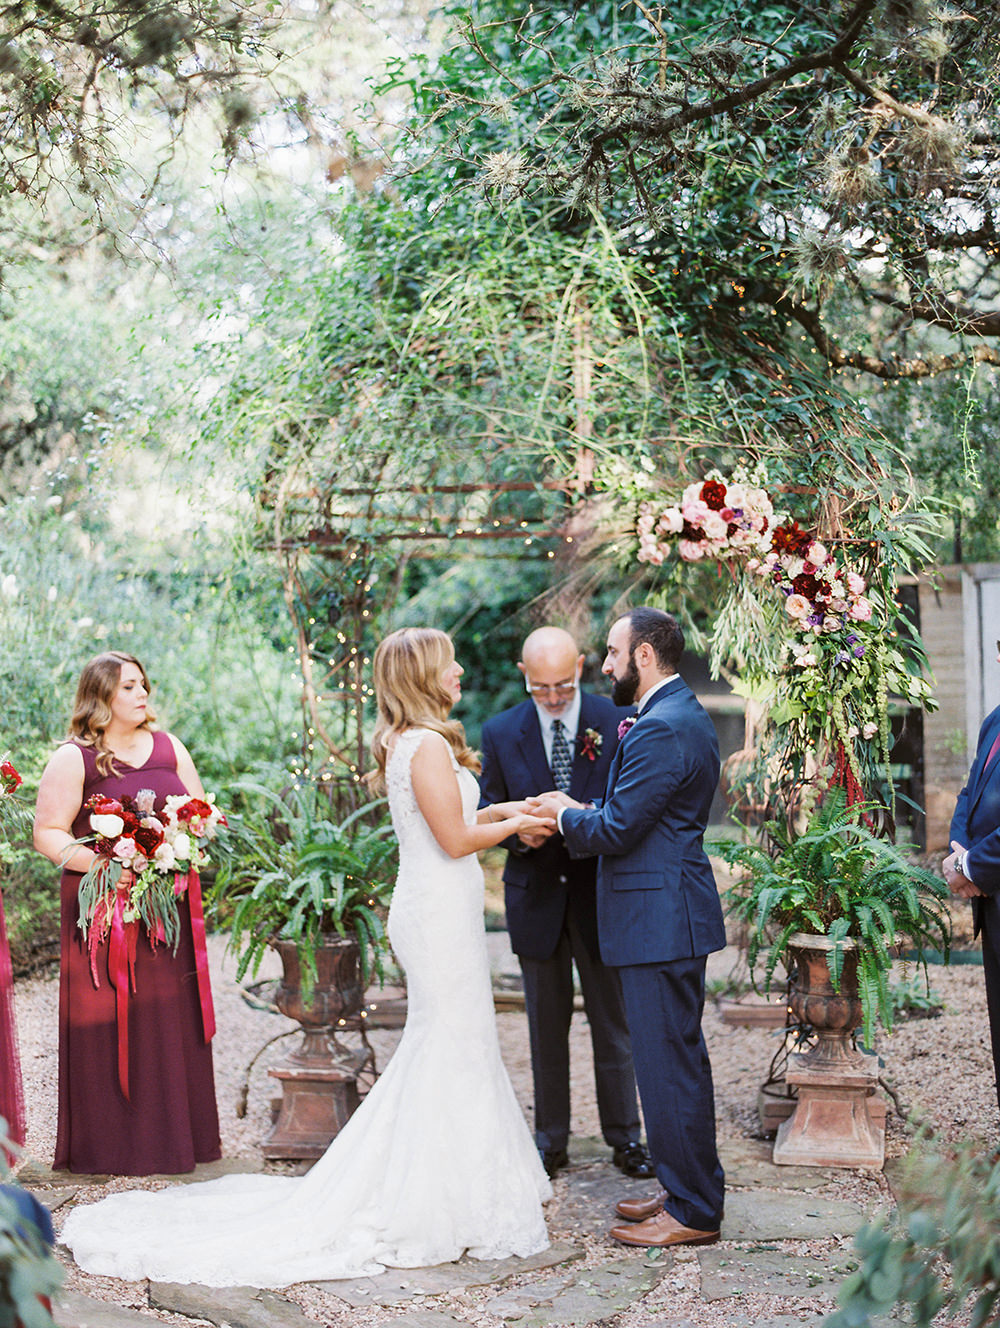 wedding ceremonies - photo by Honey Gem Creative http://ruffledblog.com/hill-country-garden-wedding